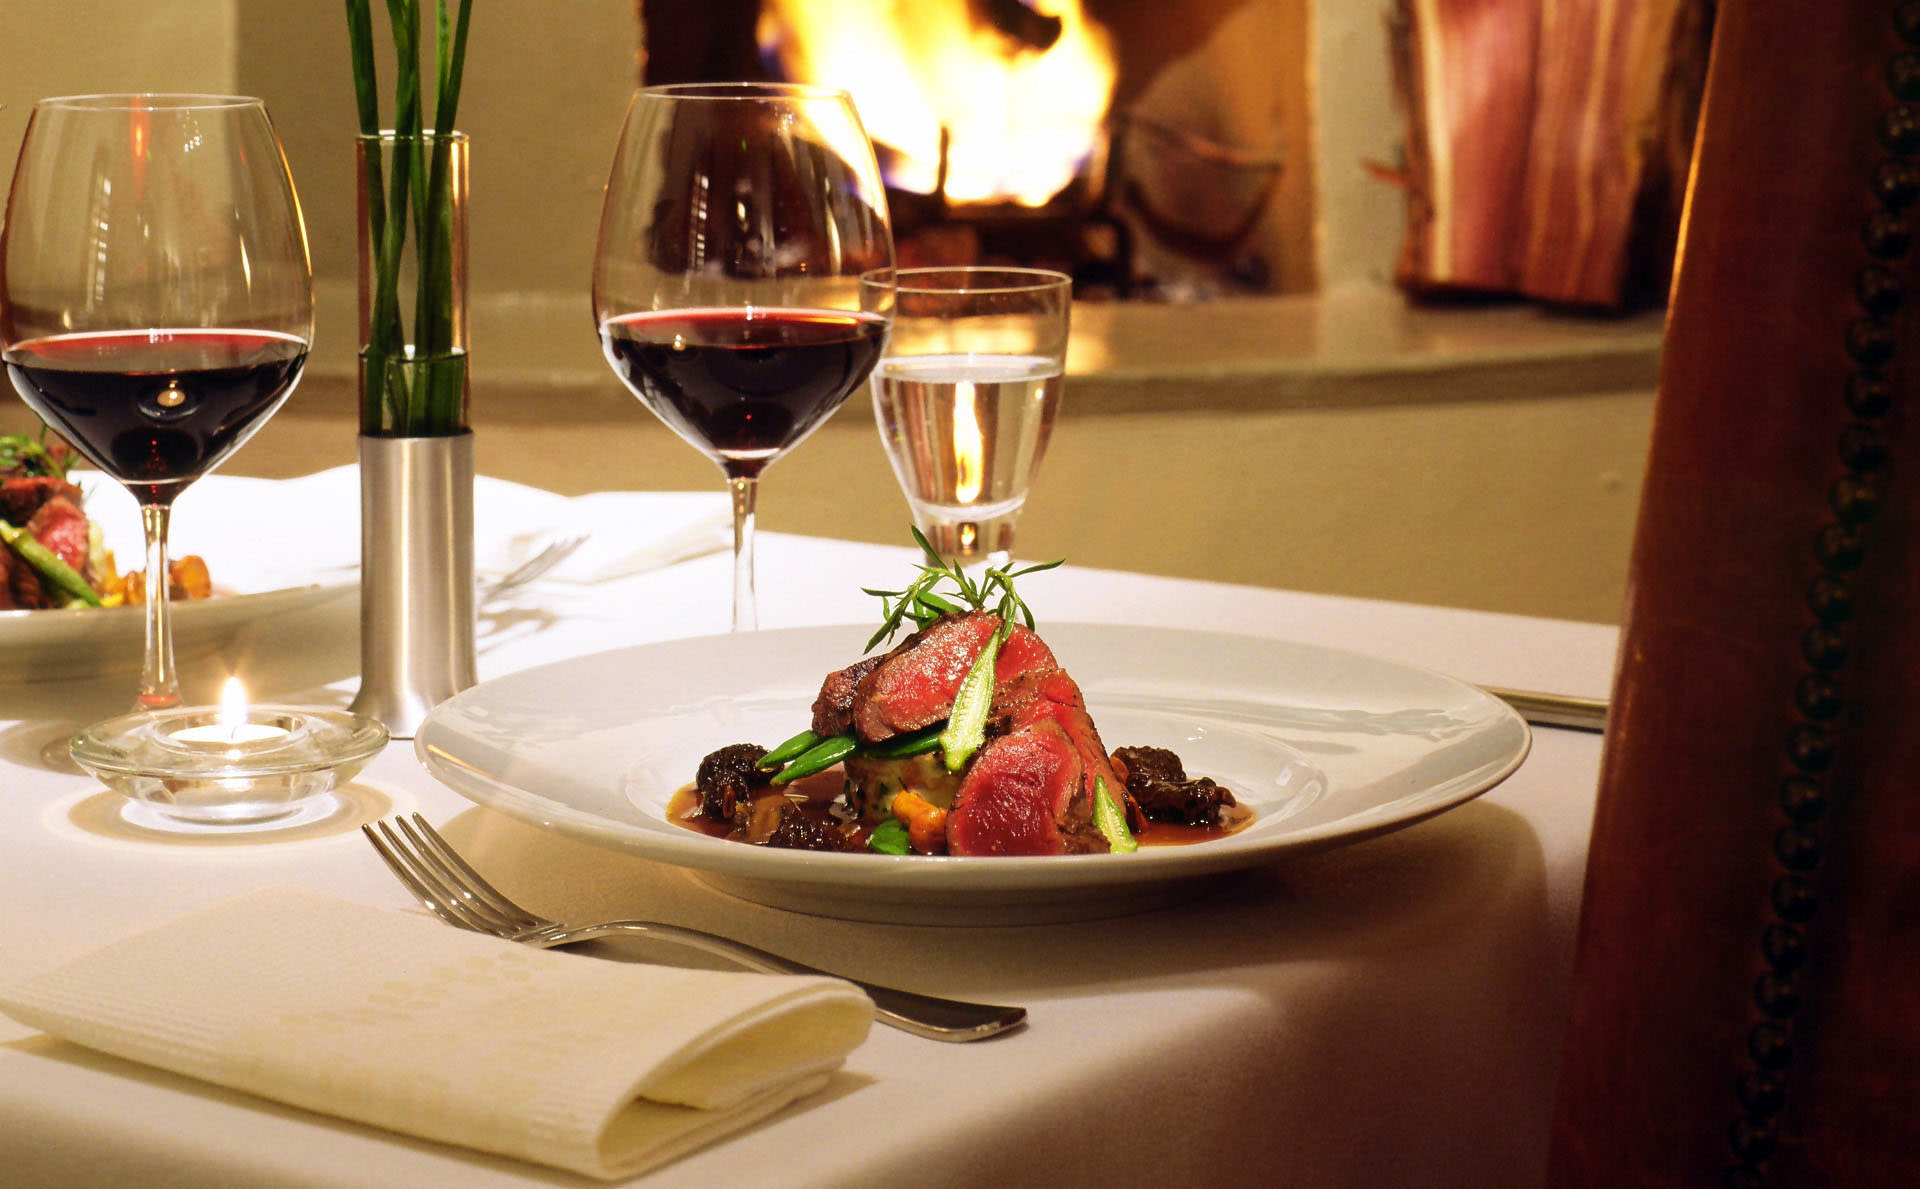 A magnificent meal in a memorable setting like Geronimo is the essence of Santa Fe flavor.